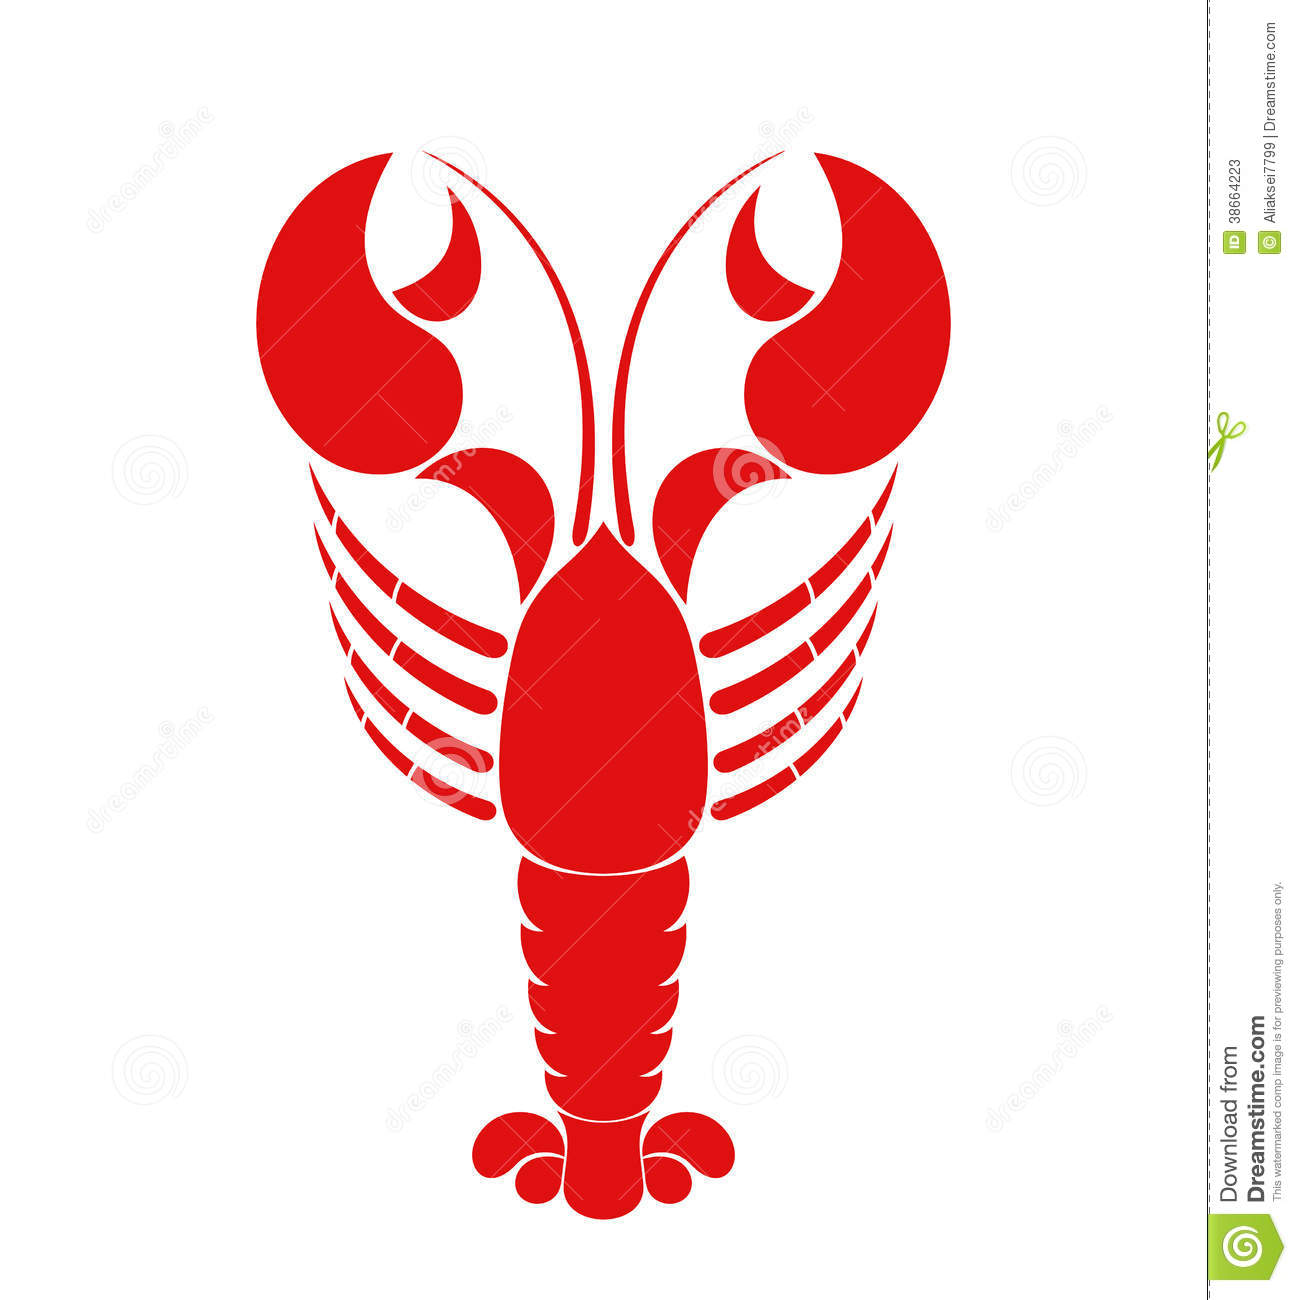 Lobster Stock Photos - Image: 38664223